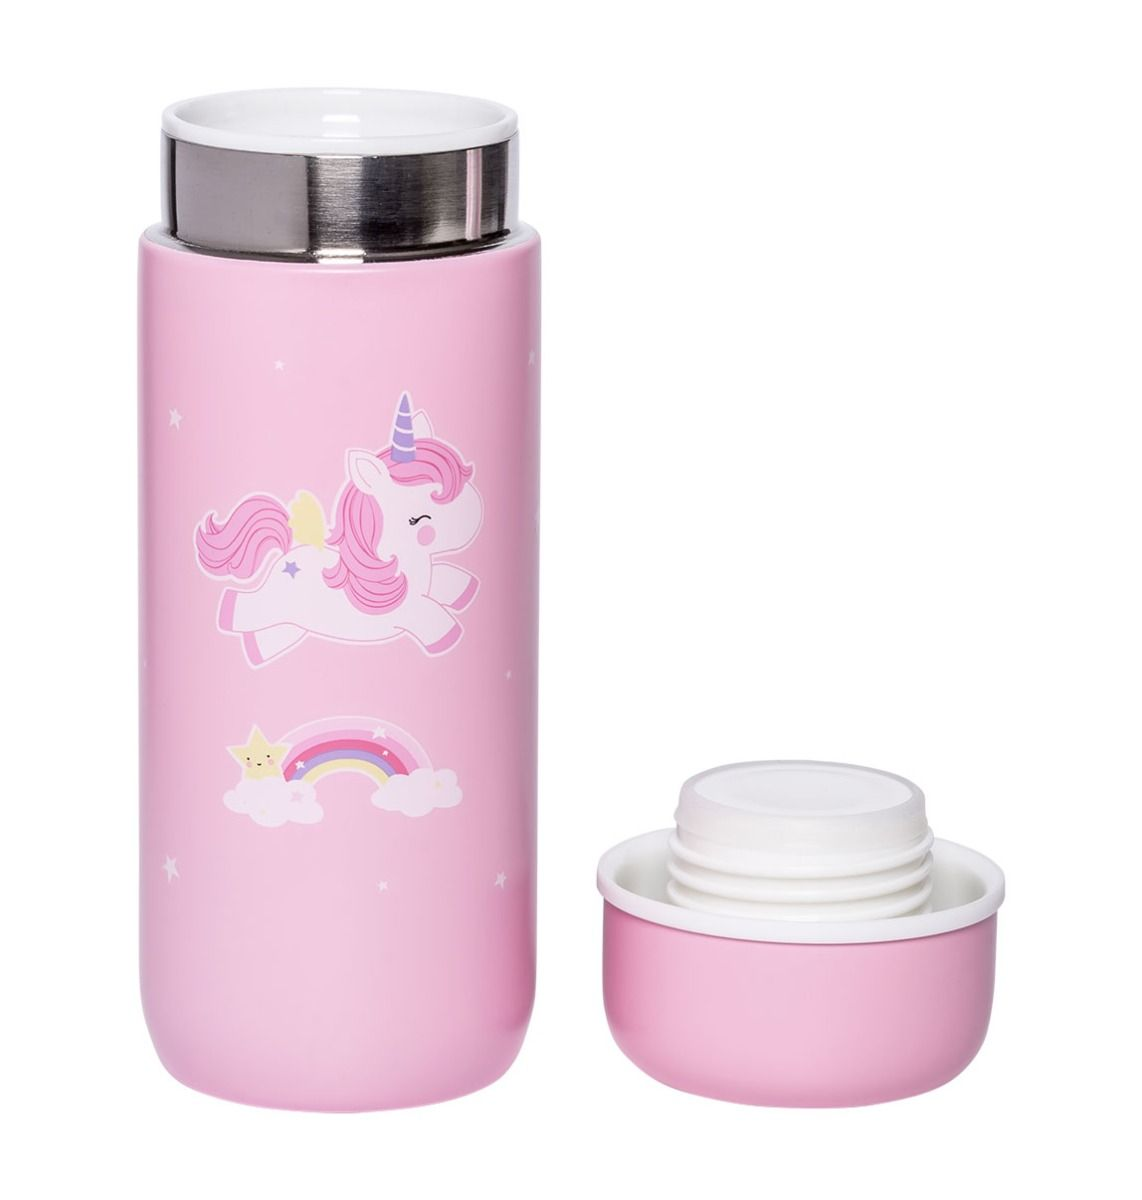 INSULATED STAINLESS STEEL UNICORN DRINK BOTTLE